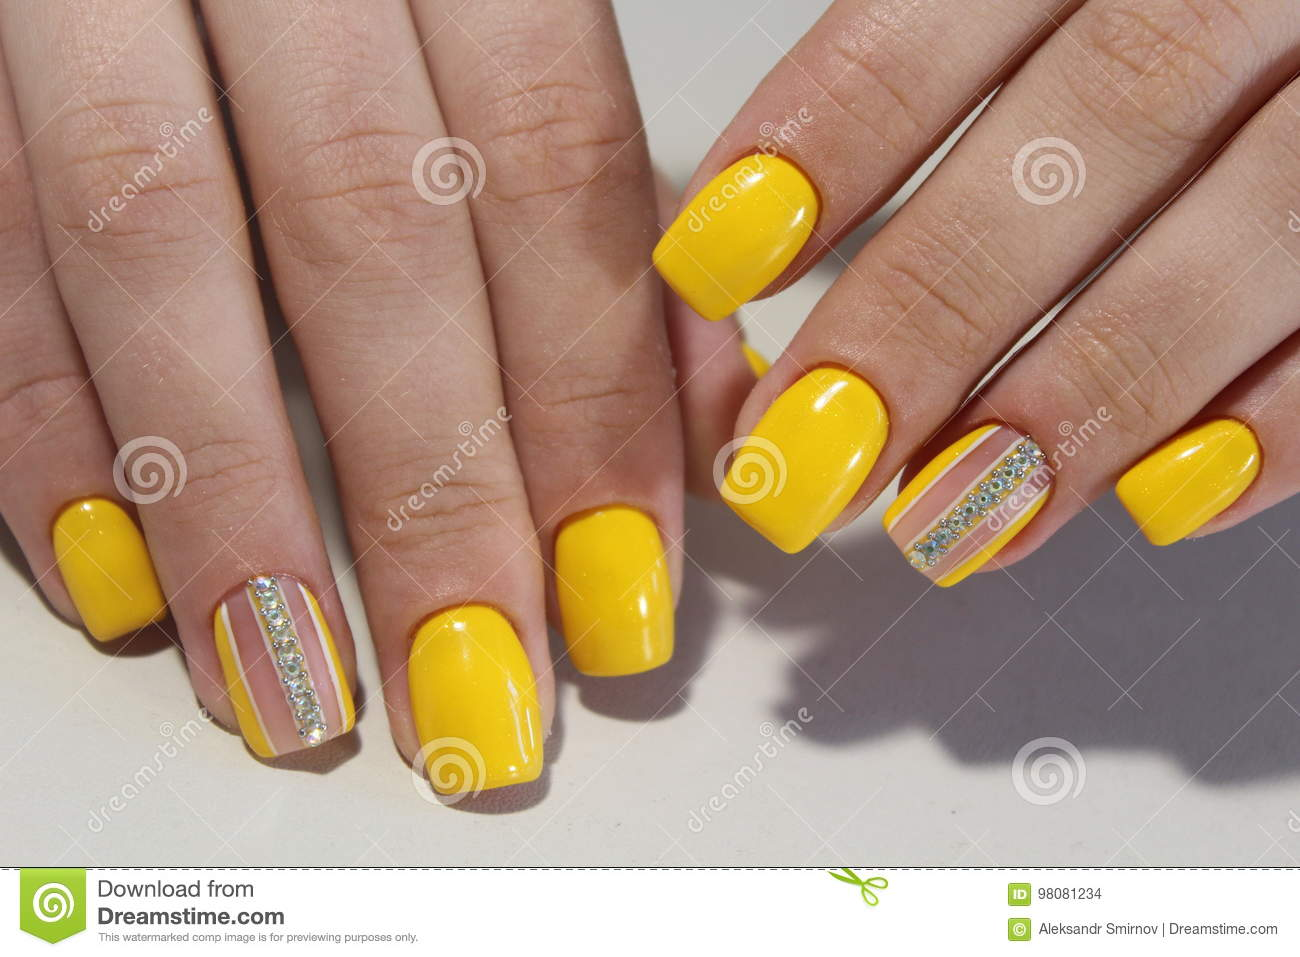 Yellow Manicure Nail Design With Stones Stock Photo - Image of ...